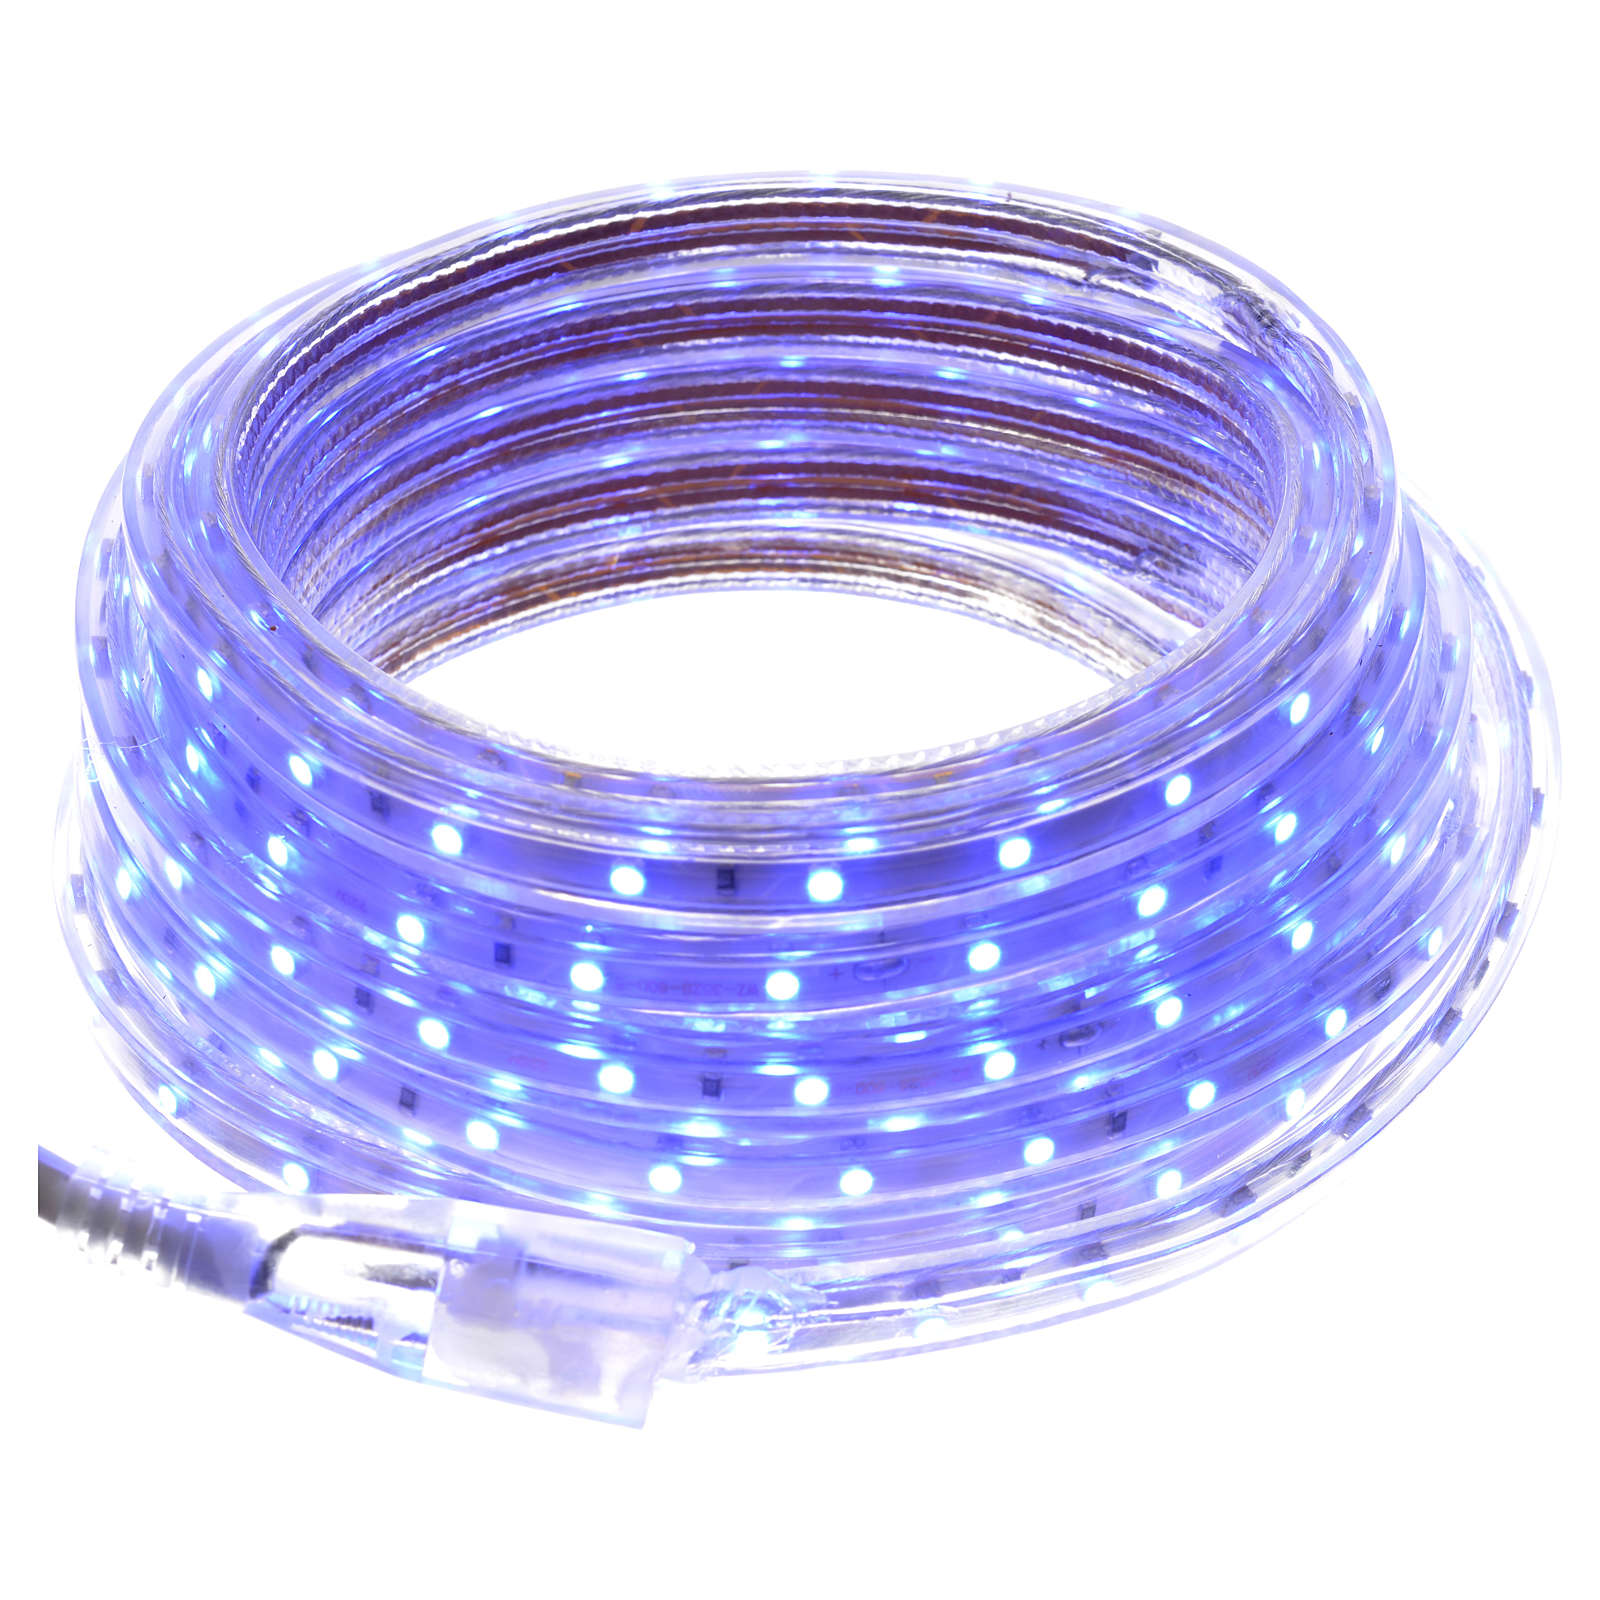 Fairy lights slim strip with 300 blue LED for indoor use 3